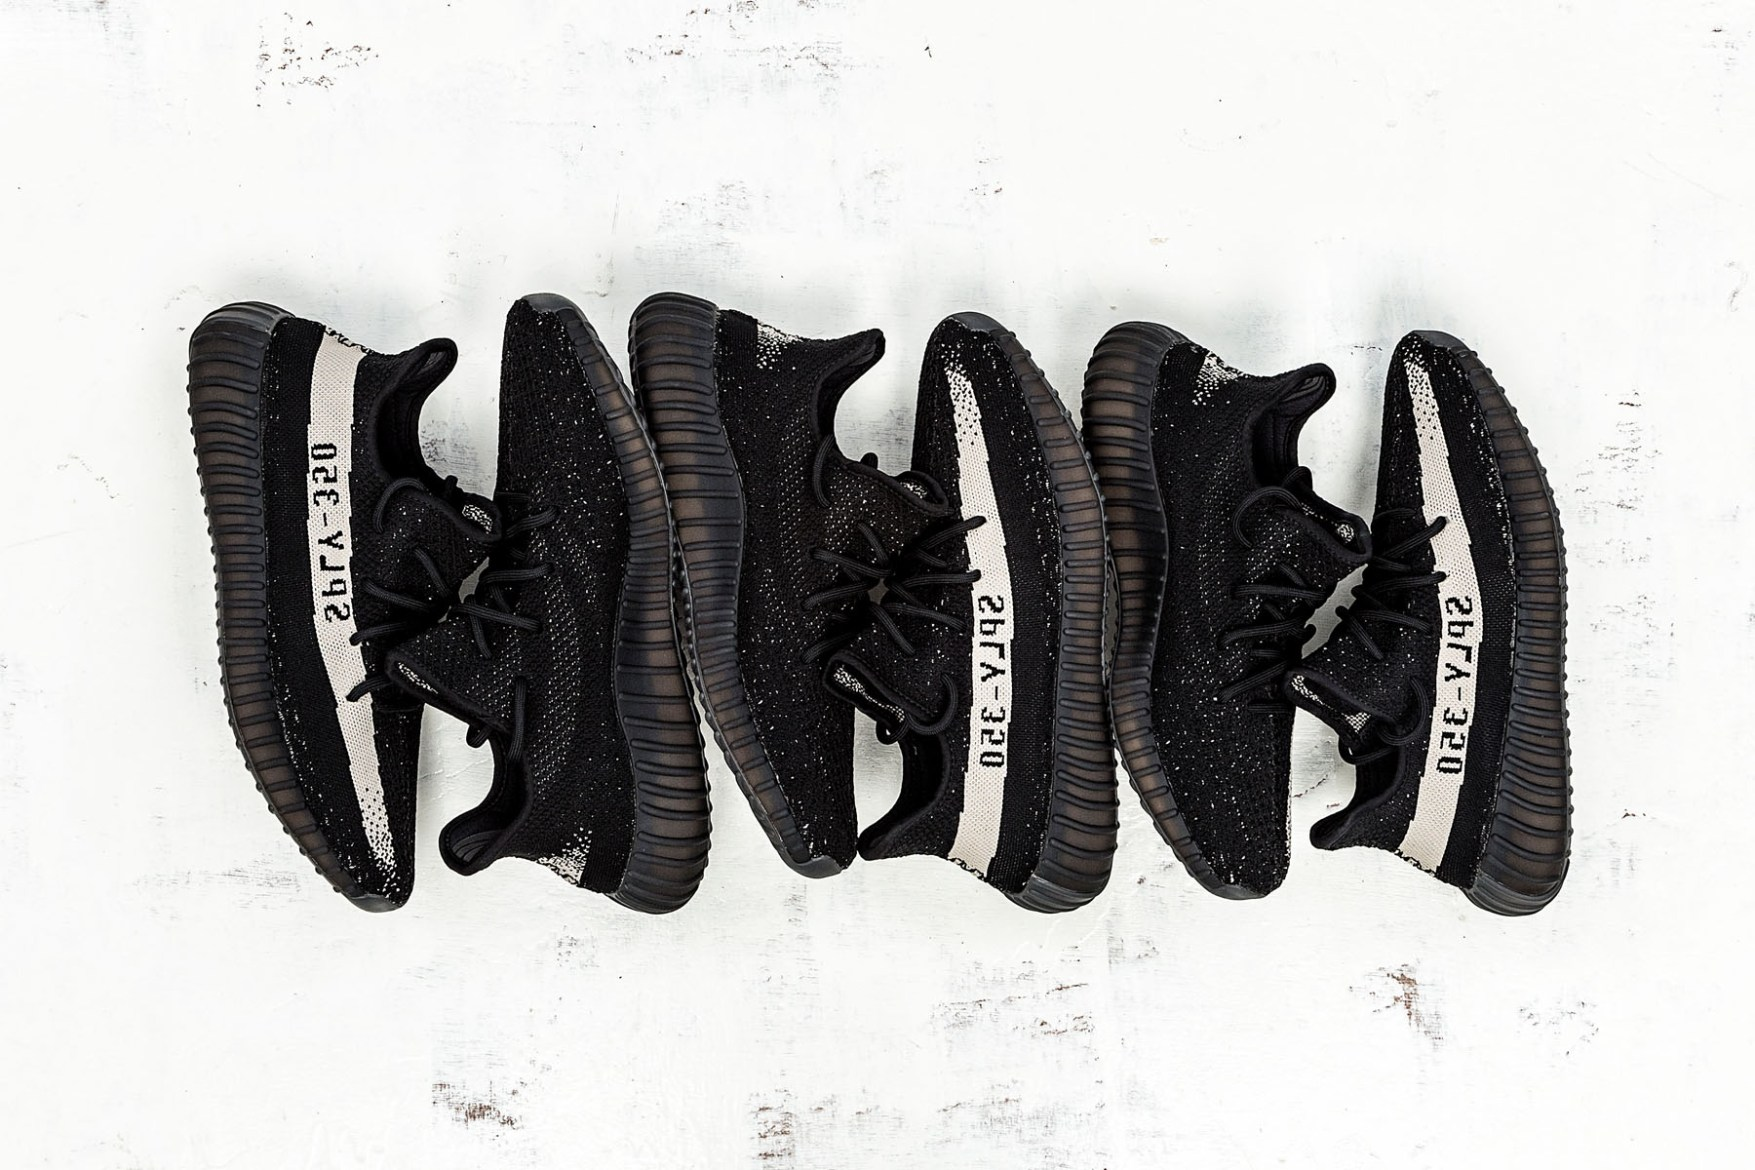 88% Off Yeezy boost 350 v2 'dark green' uk release July 2017 Restock